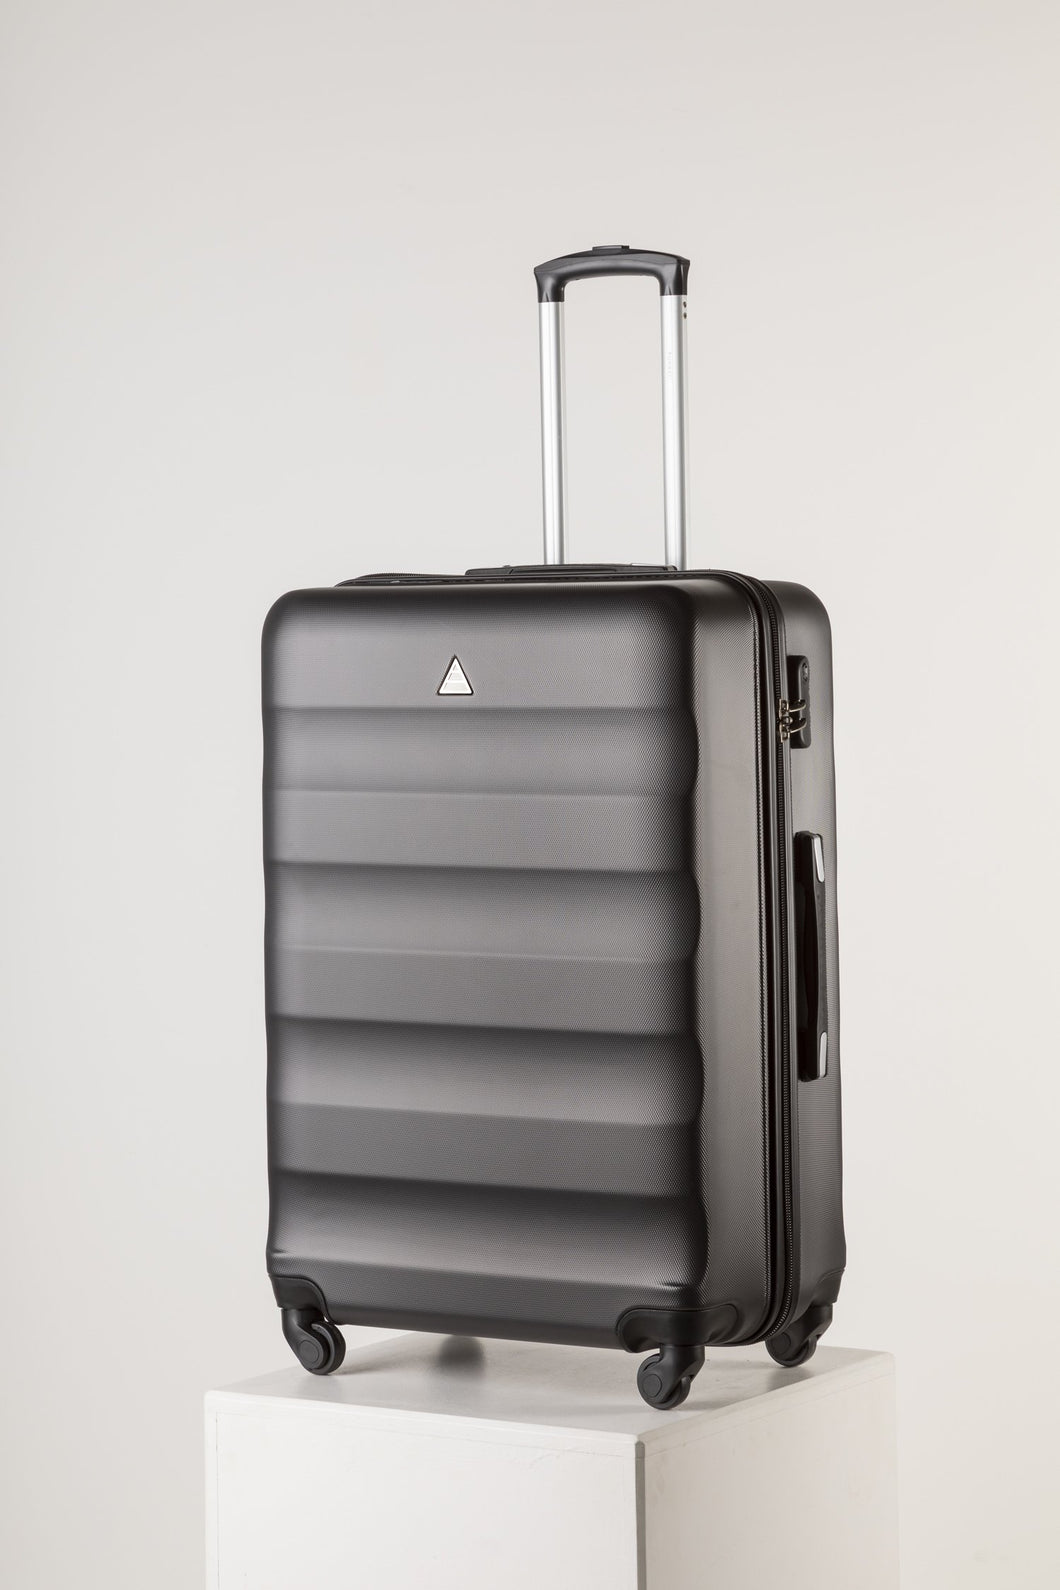 Extra Large Family Sized Luggage Classic Black